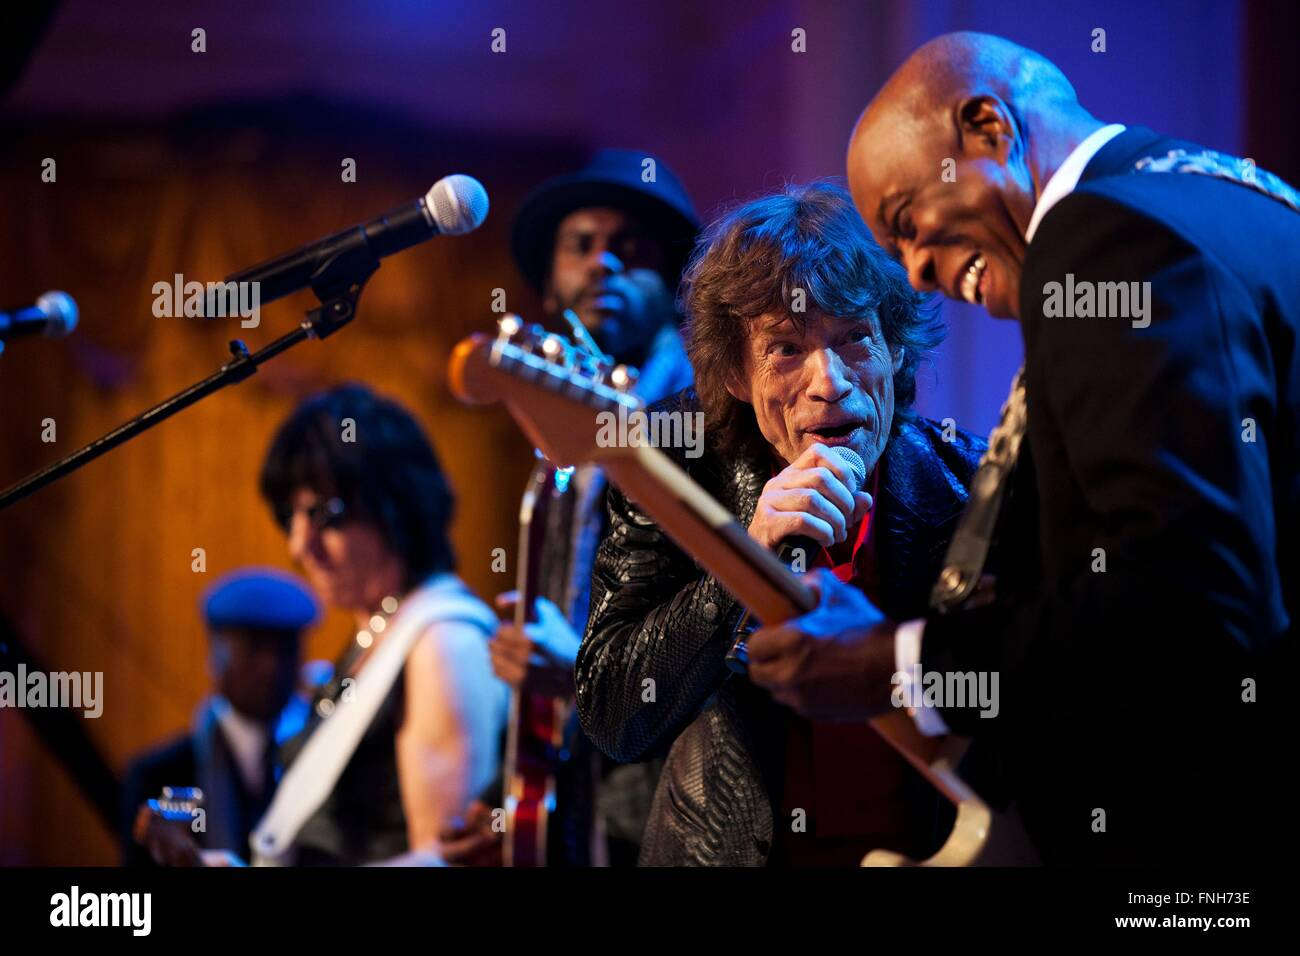 Mick Jagger performs during the In Performance at the White House: Red, White and Blues concert in the East Room - Stock Image